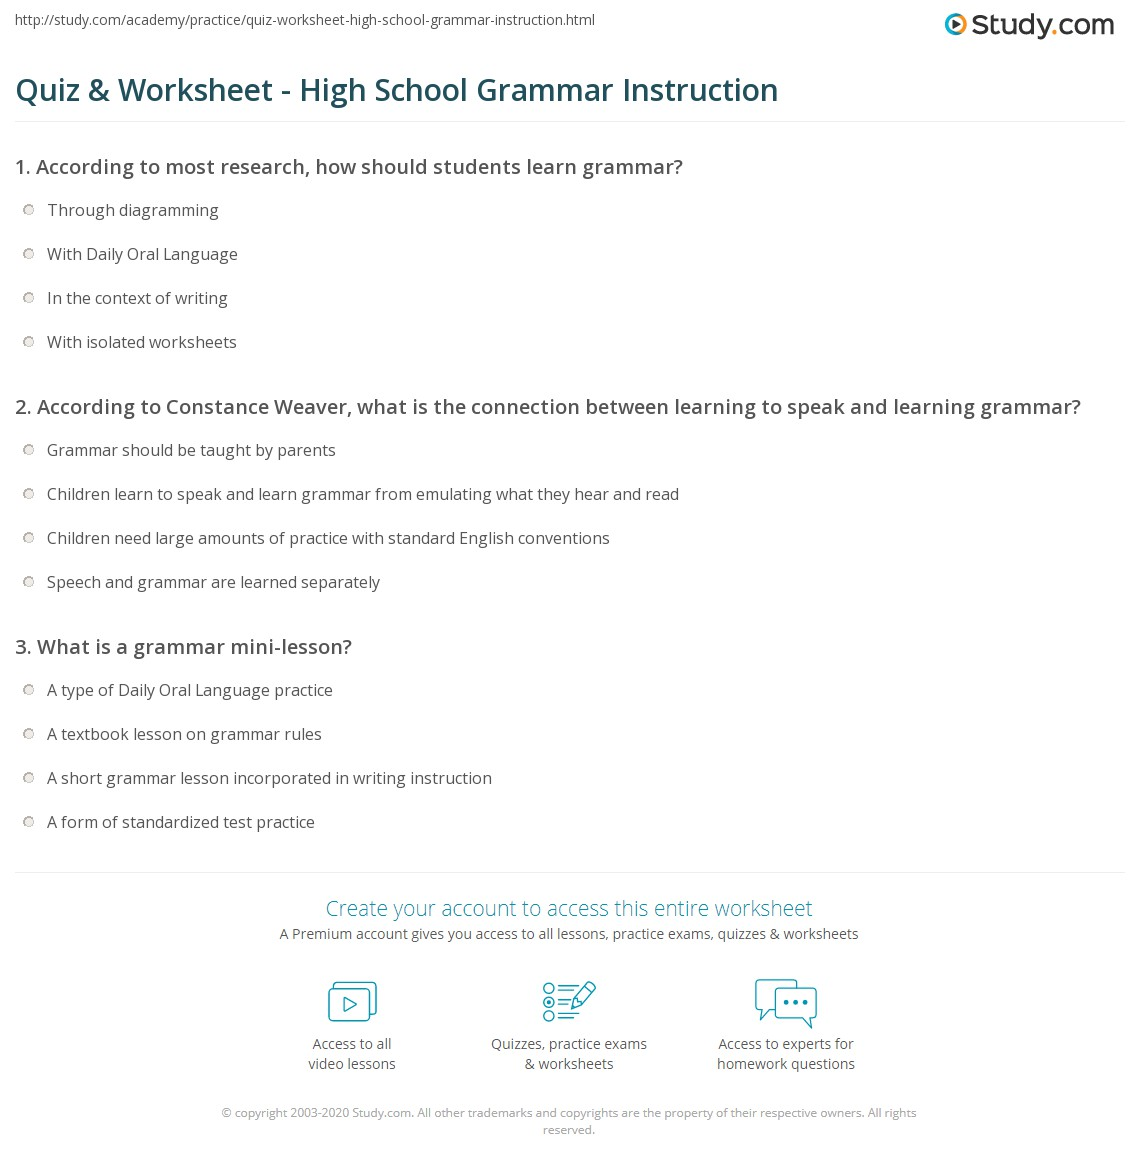 Grammar Worksheets High School: Quiz & Worksheet   High School Grammar Instruction   Study com,